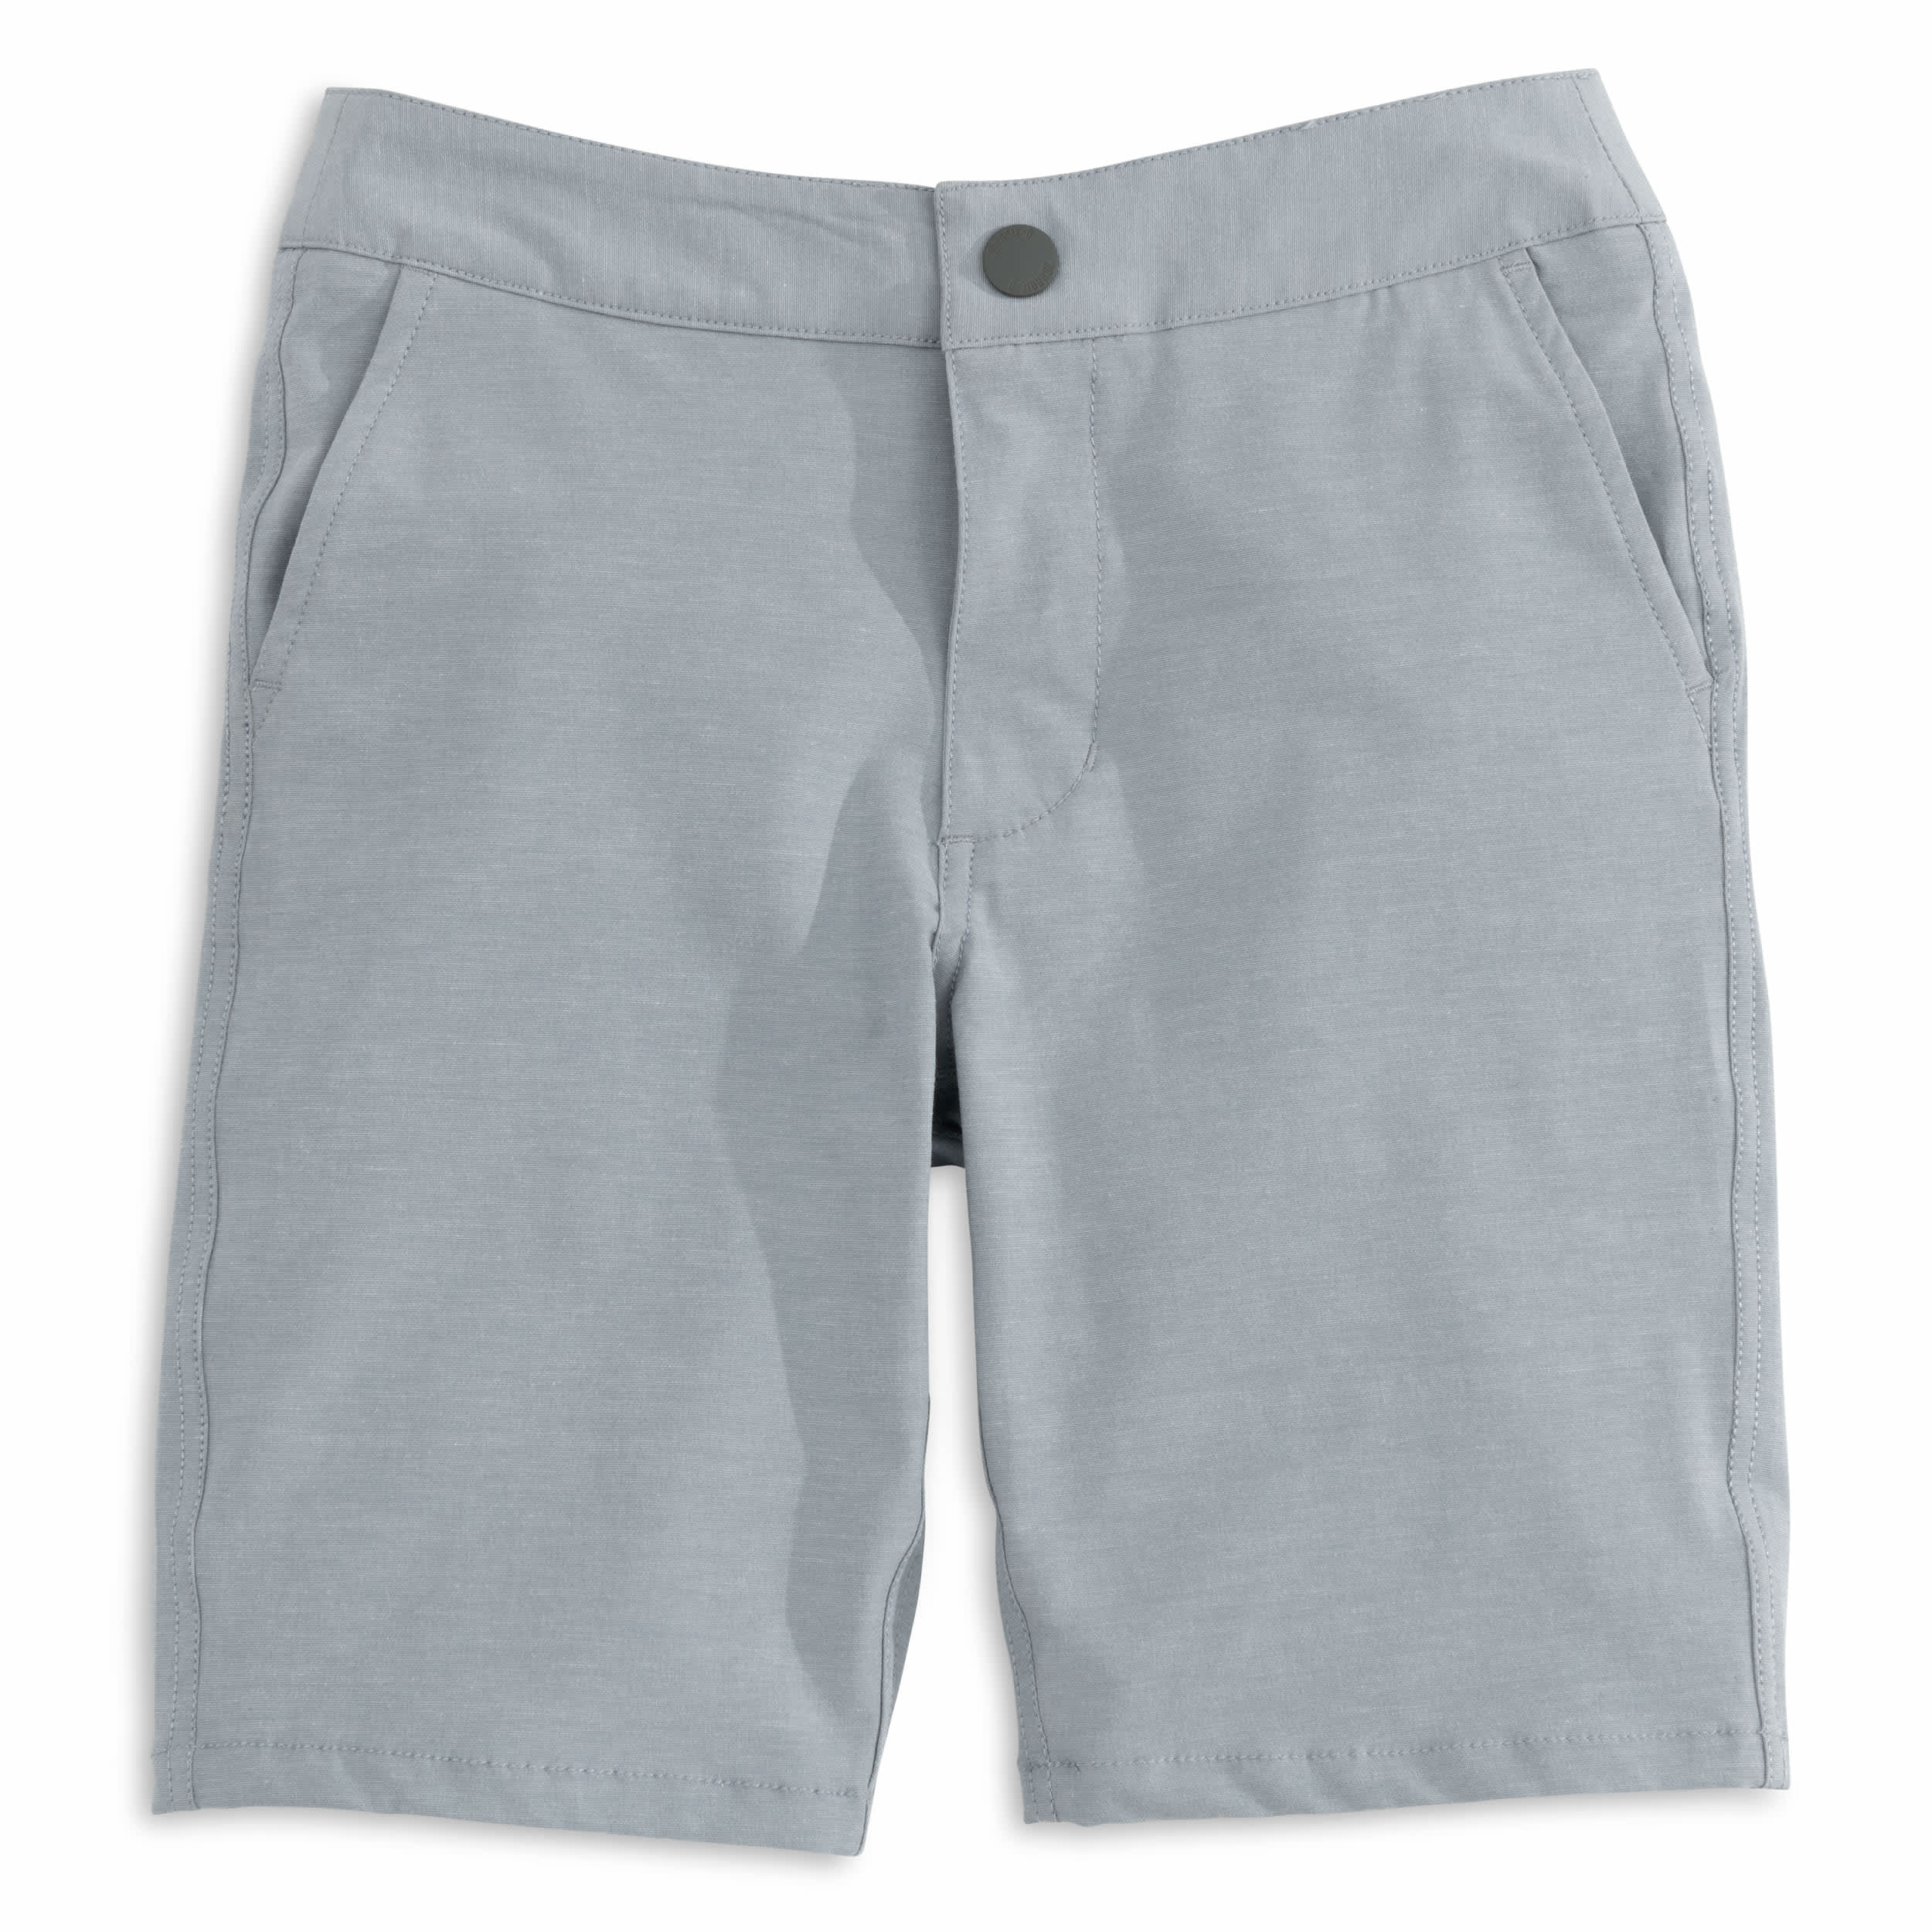 DAWN 2 DUSK JR HYBRID SHORT